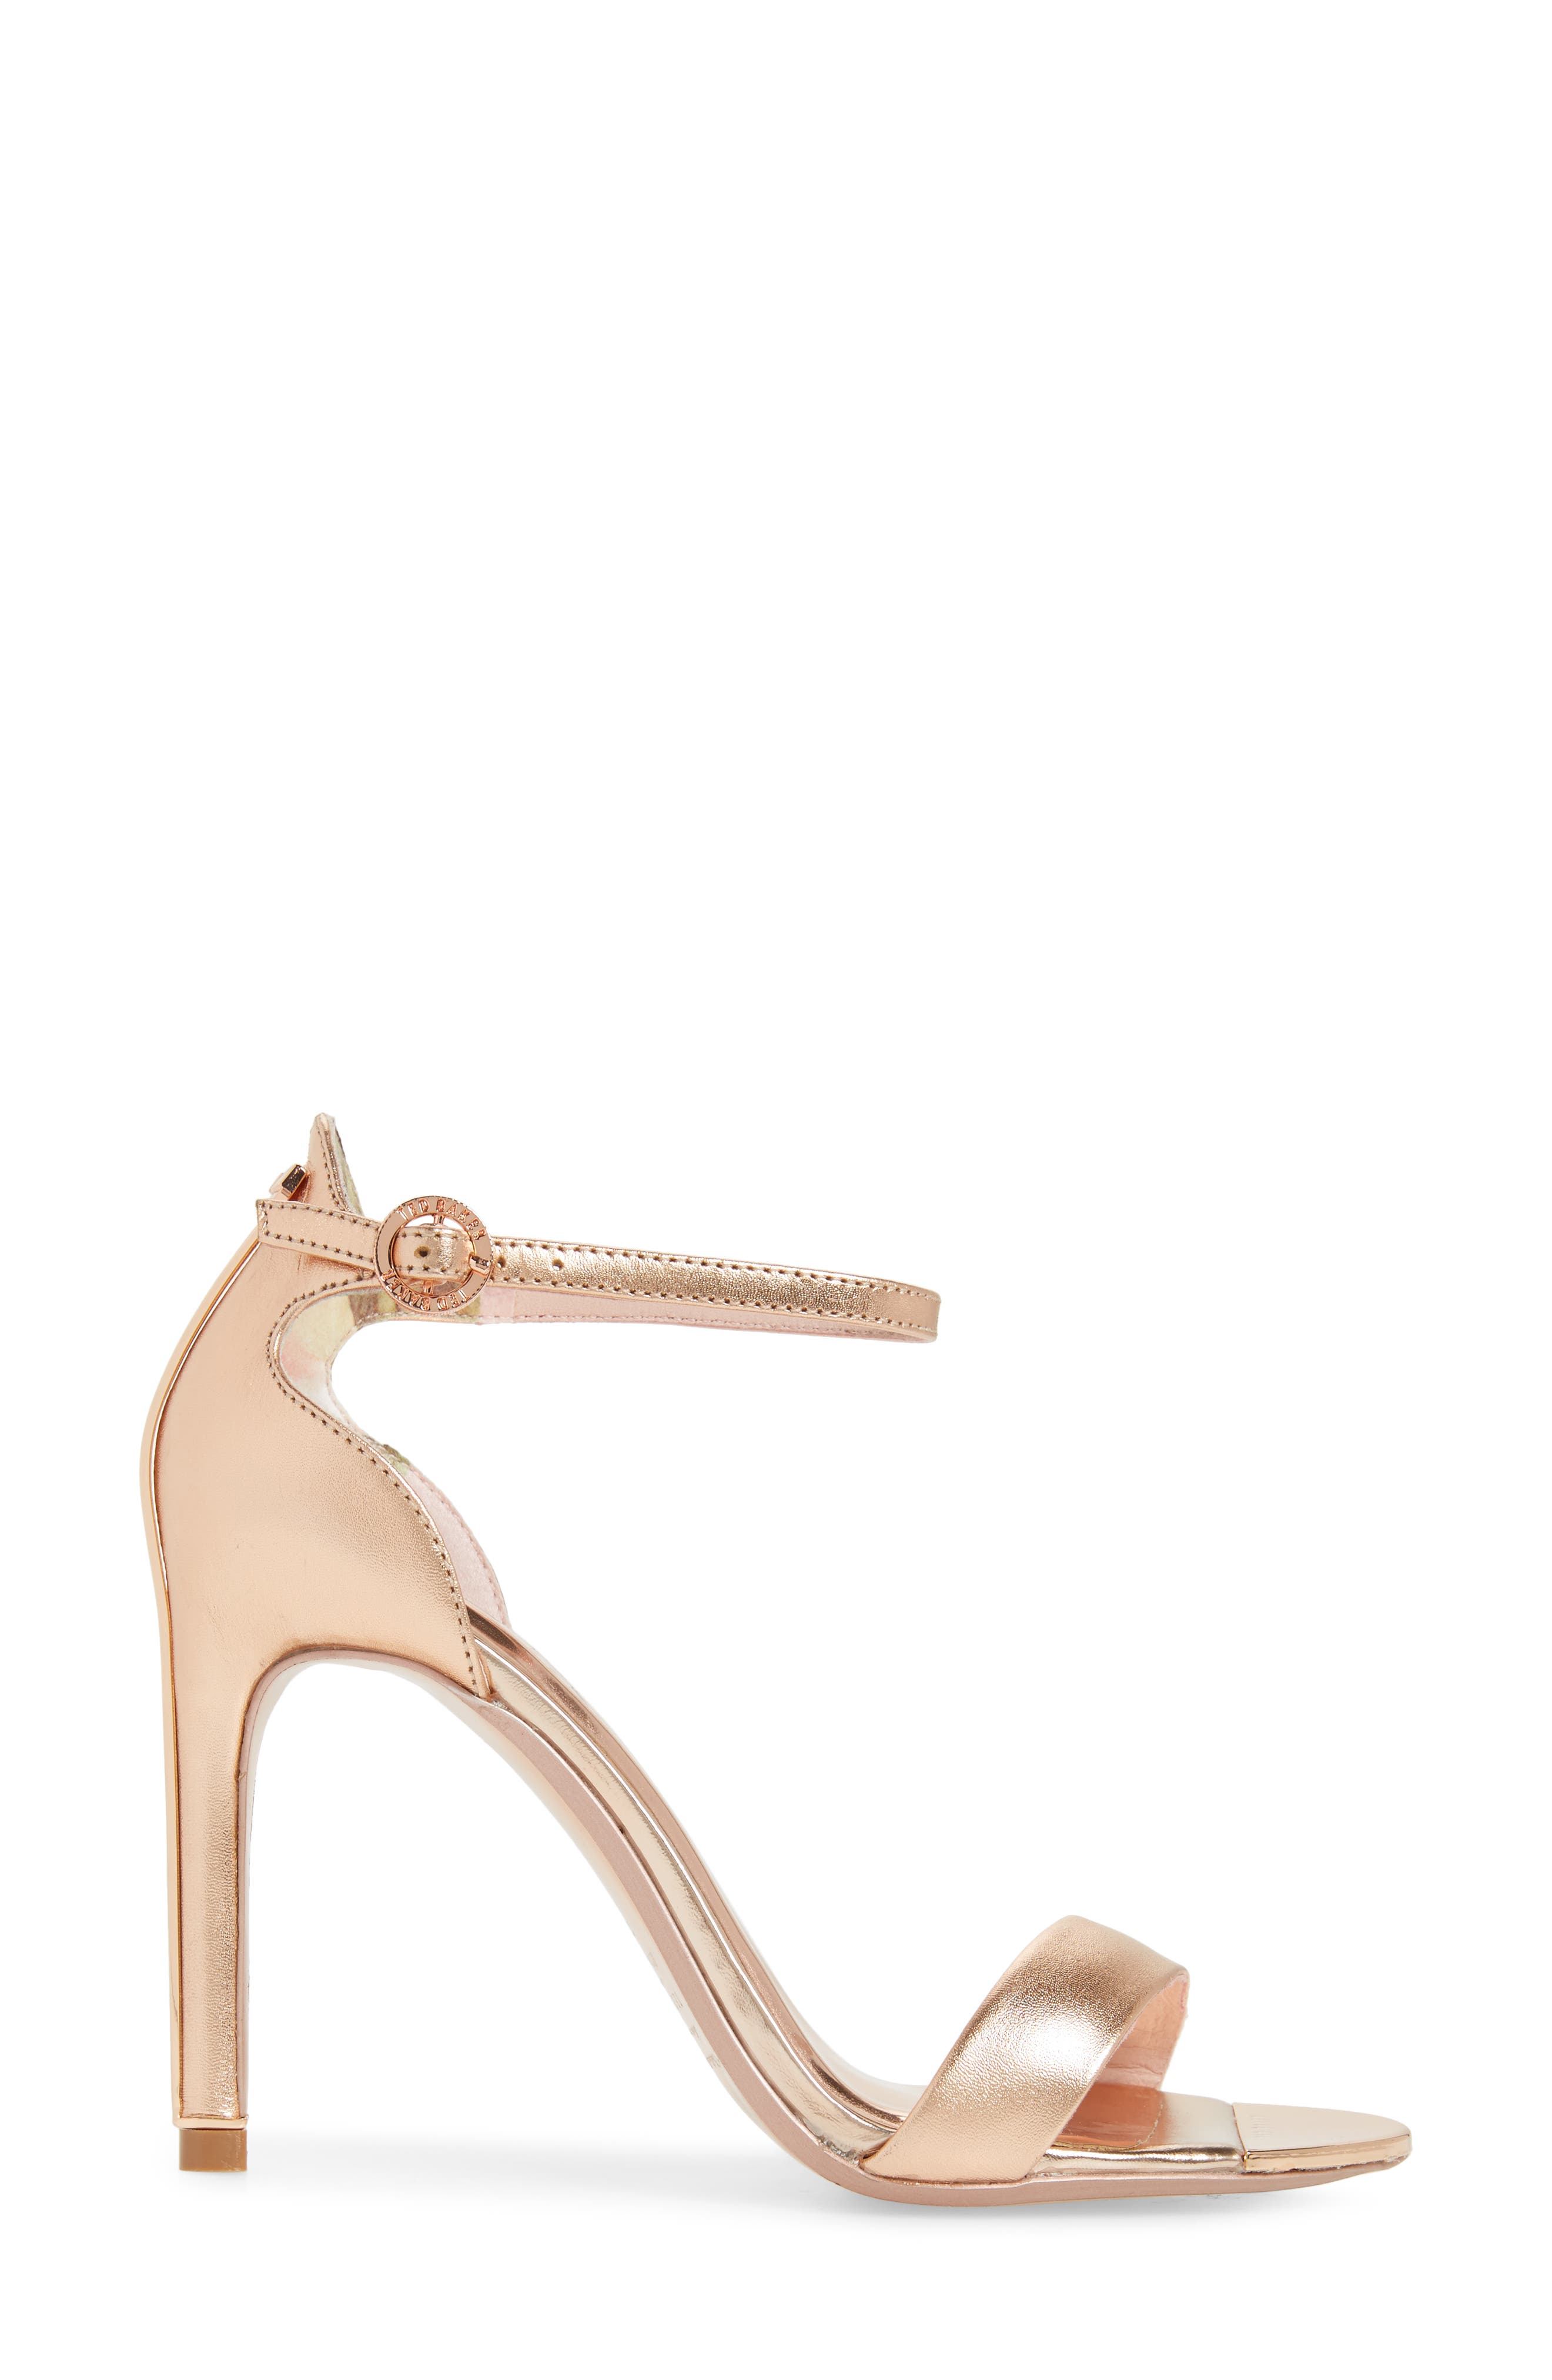 Sharlot Ankle Strap Sandal,                             Alternate thumbnail 3, color,                             Rose Gold Leather